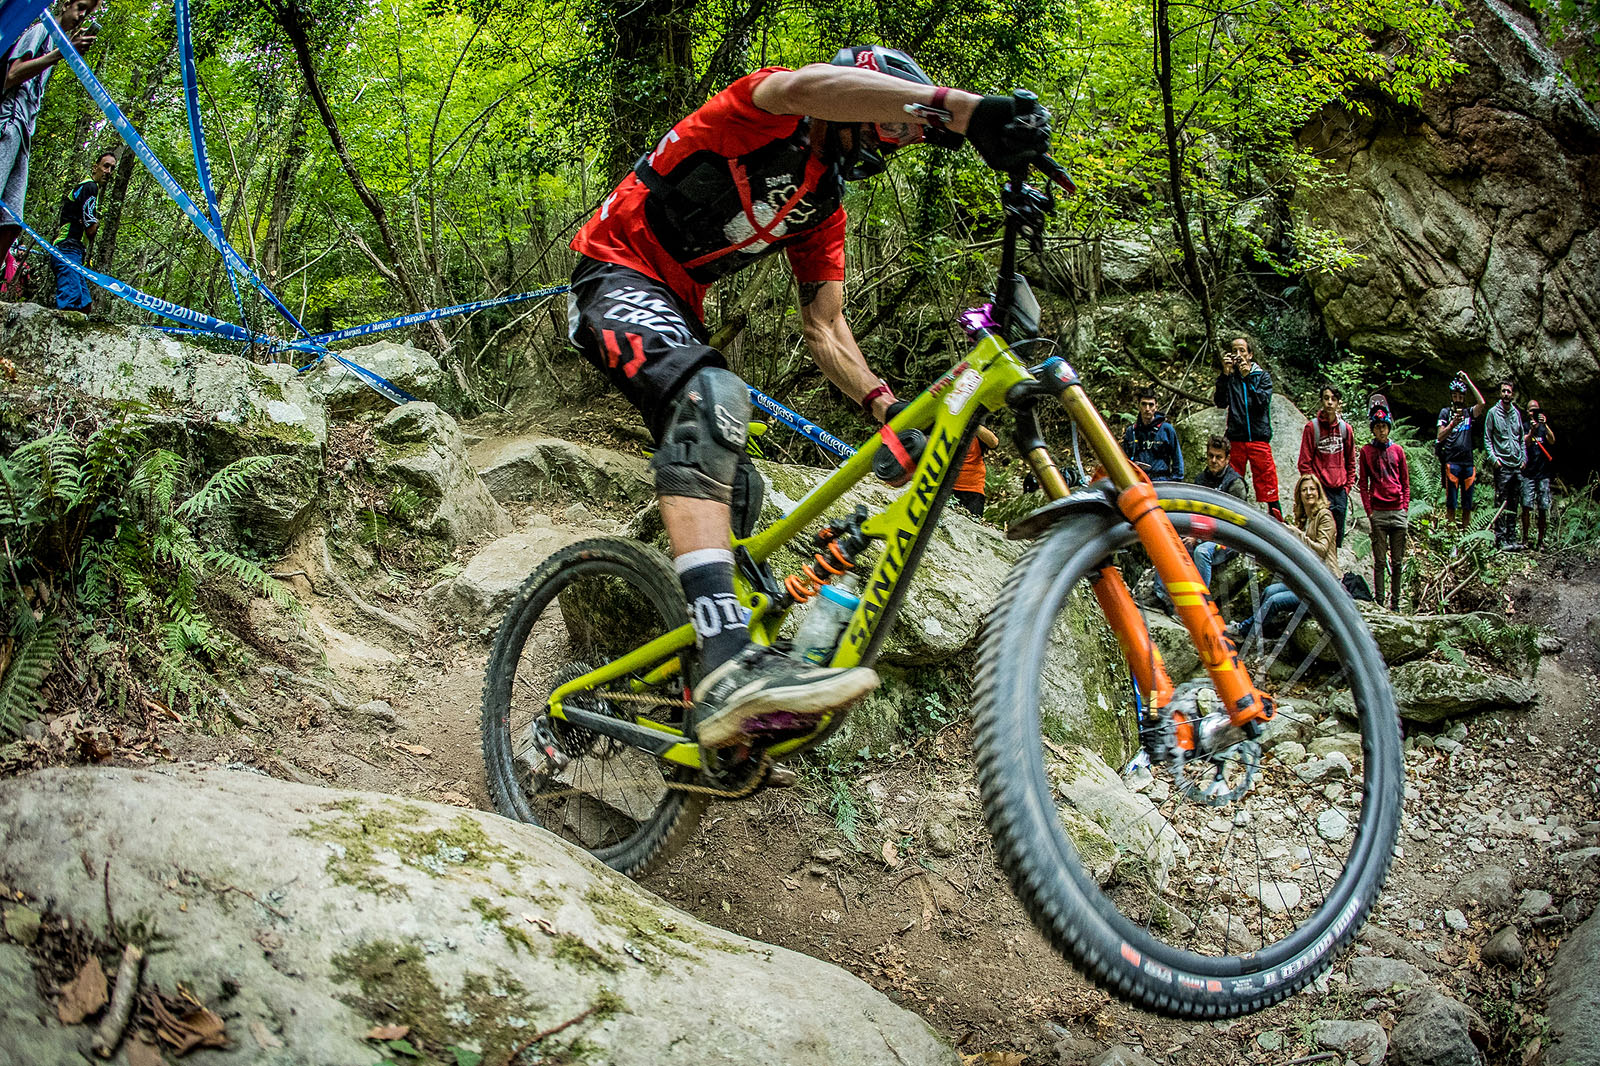 Josh Bryceland at the Enduro World Series race in Finale